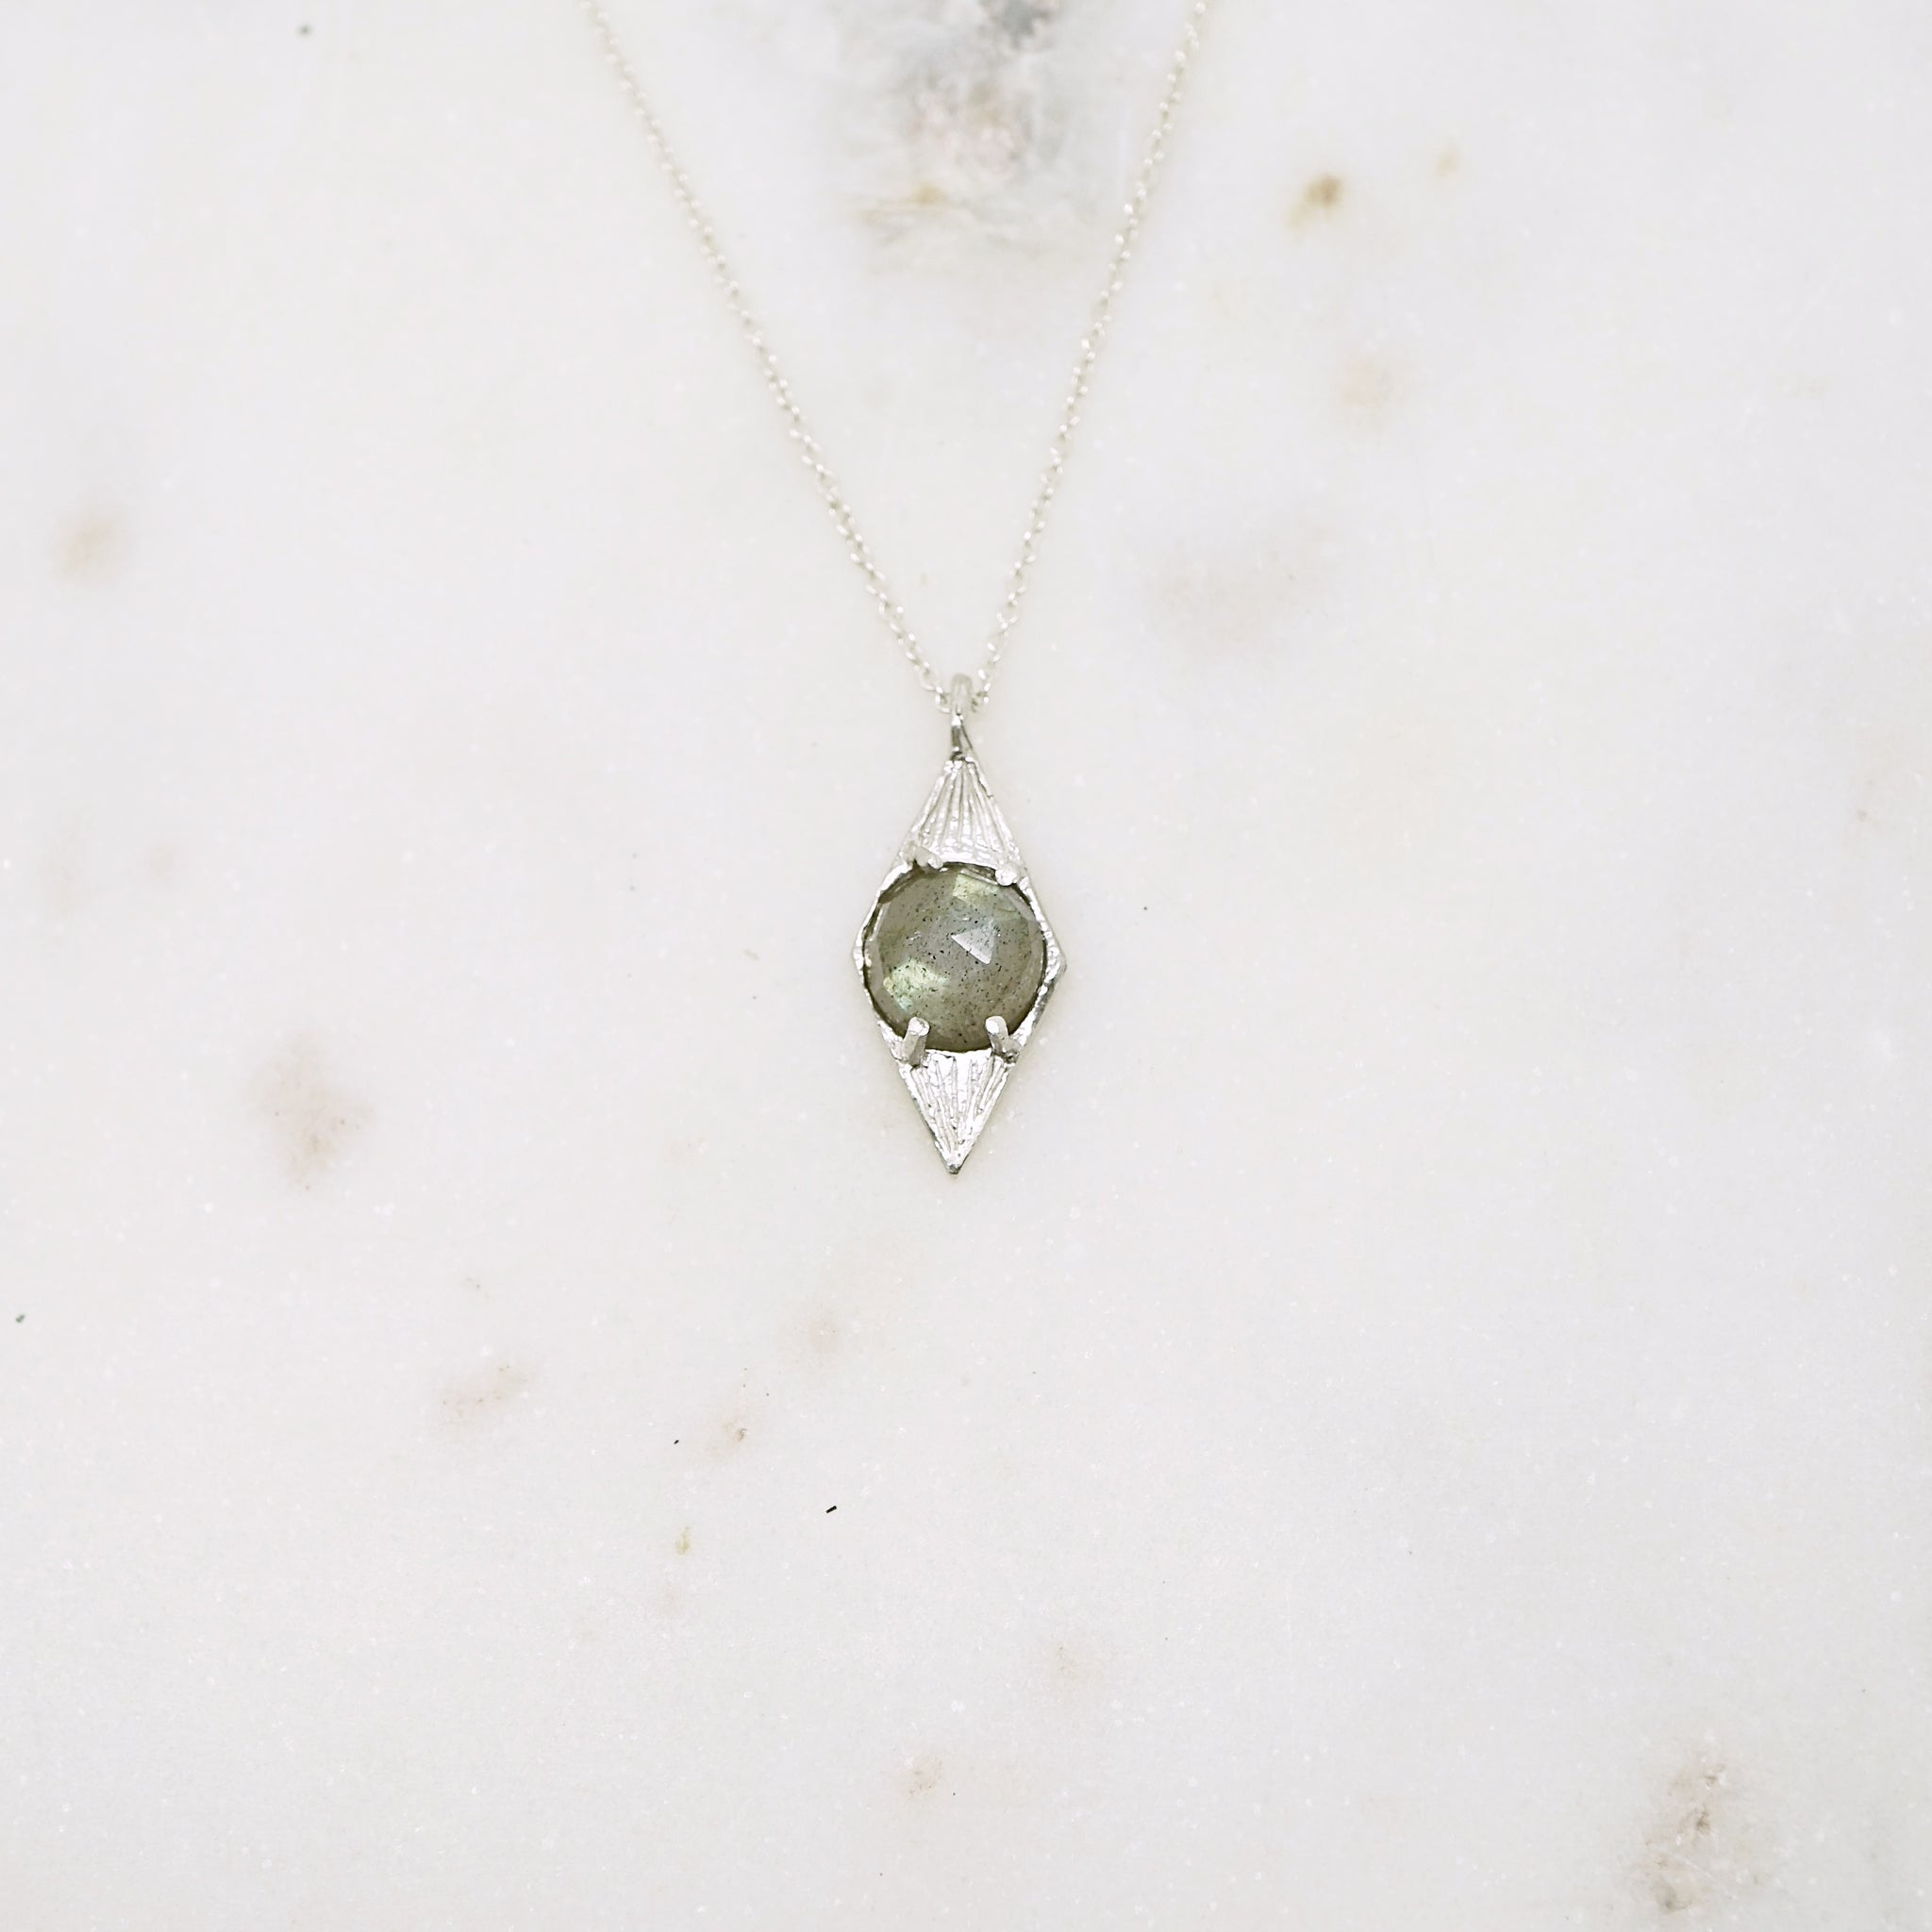 Diamond shaped pendant necklace with labradorite